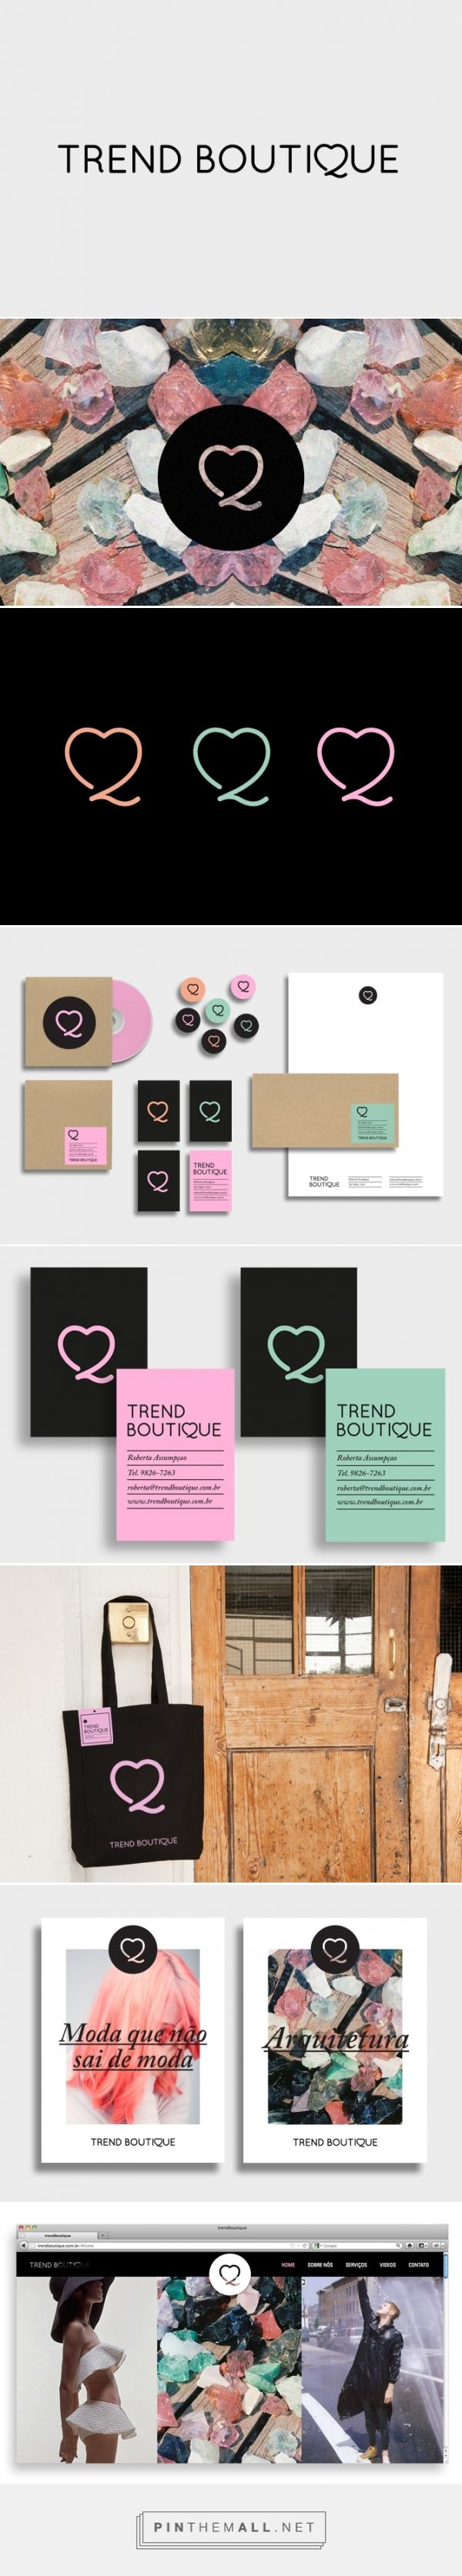 Trend Boutique by Belen Peralta Ramos | Fivestar Branding – Design and Branding Agency & Inspiration Gallery